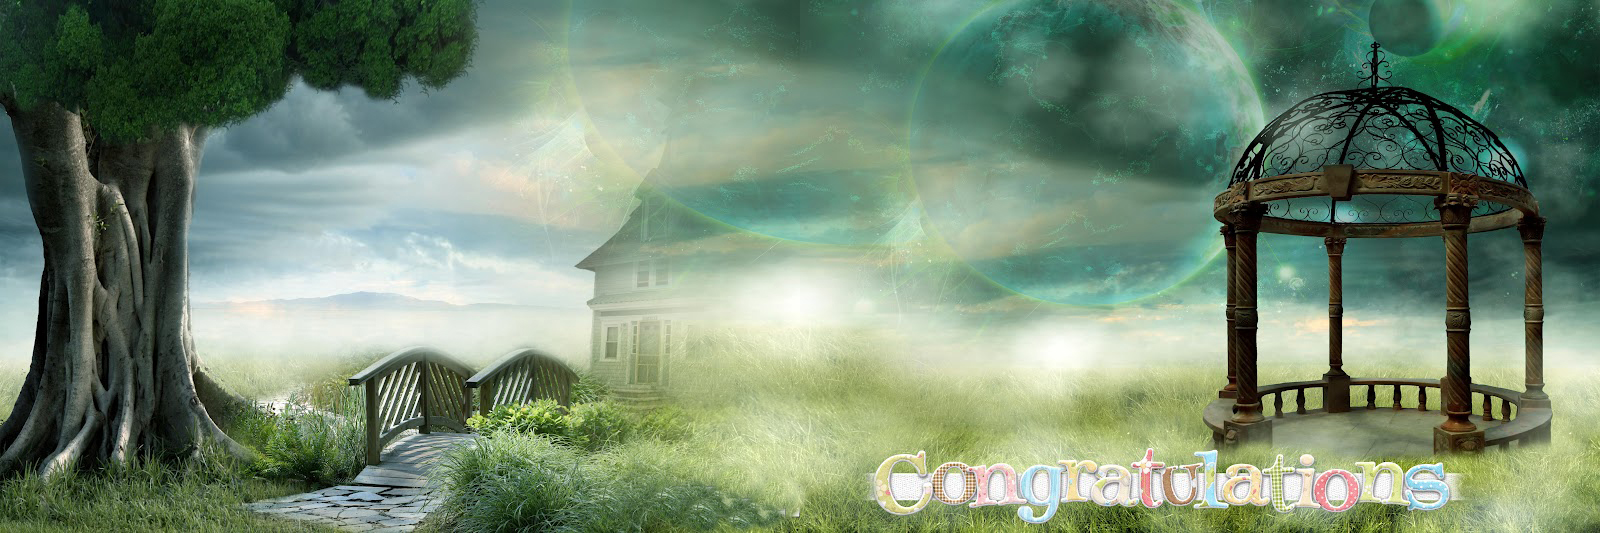 Free Photoshop Backgrounds High Resolution Wallpapers Templates